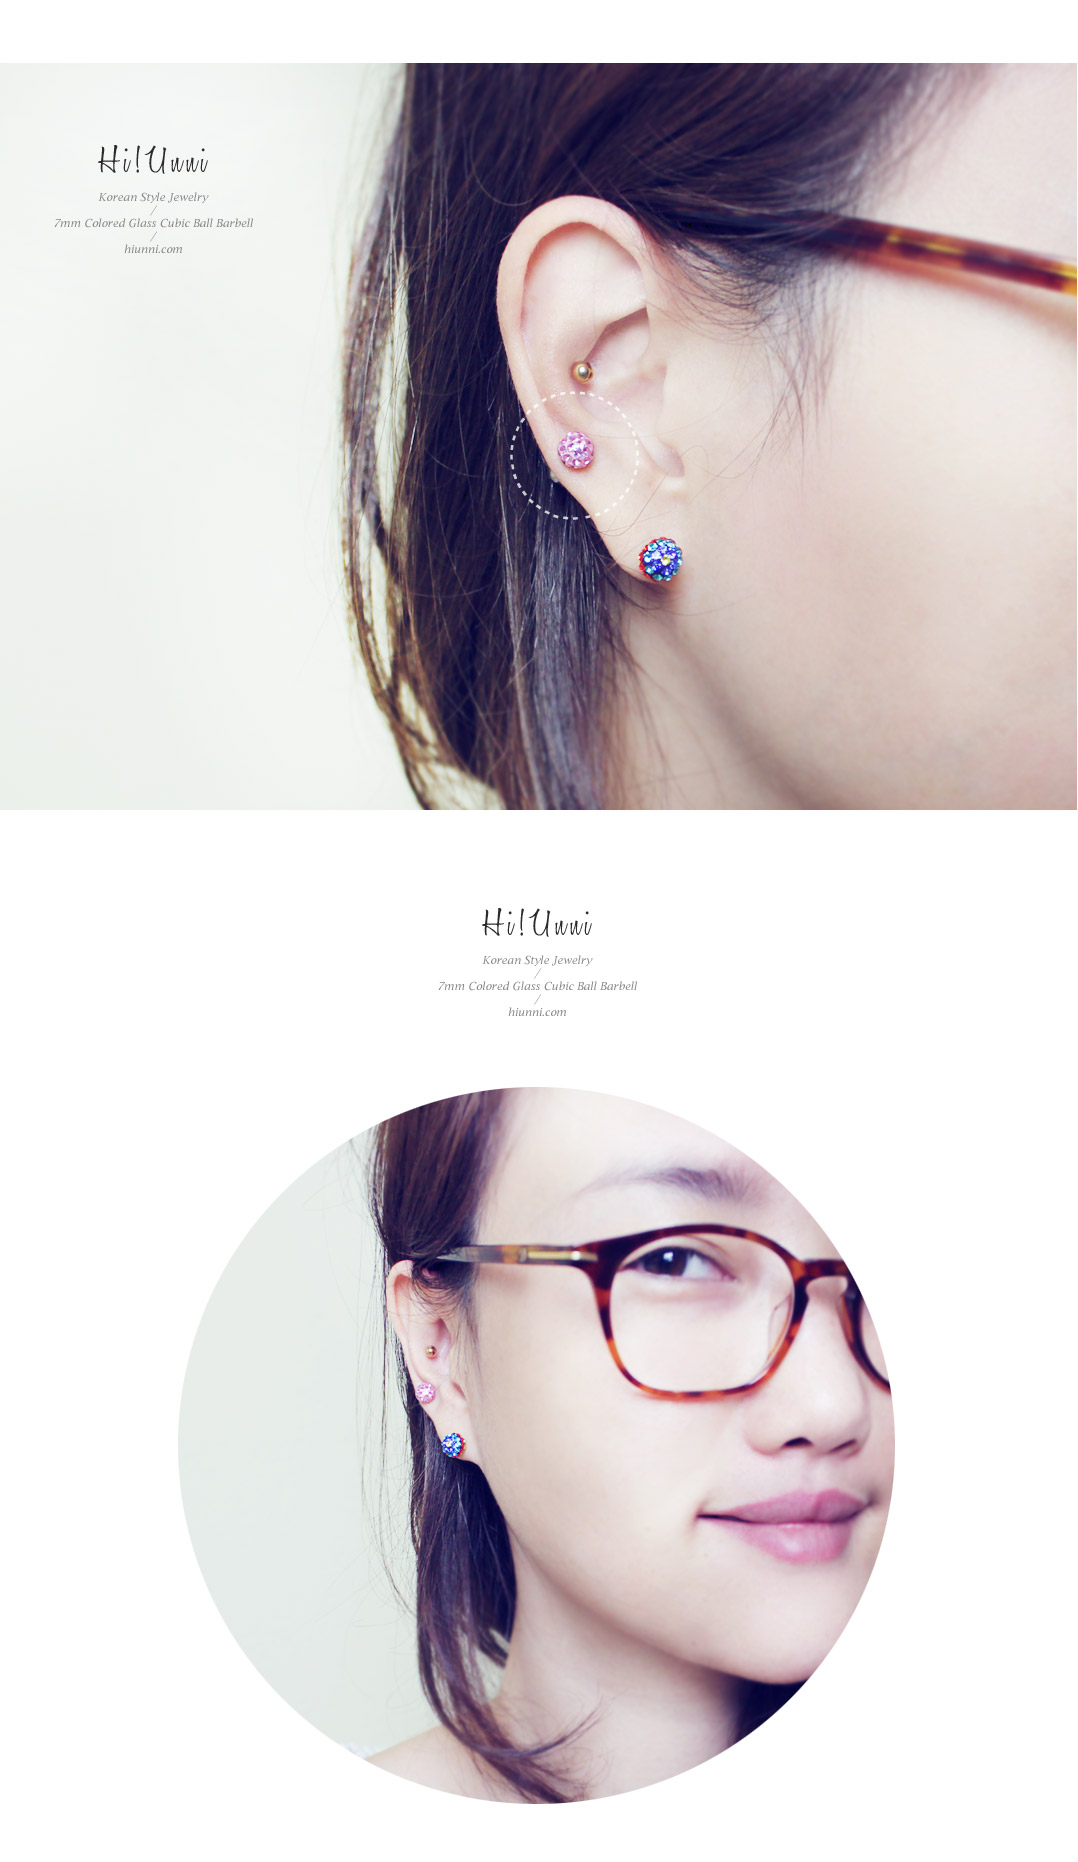 ear_studs_piercing_cartilage_earrings_16g_316l_surgical_stainless_steel_korean_asian_style_jewelry_ferido_gem_cubicball_tragus_4